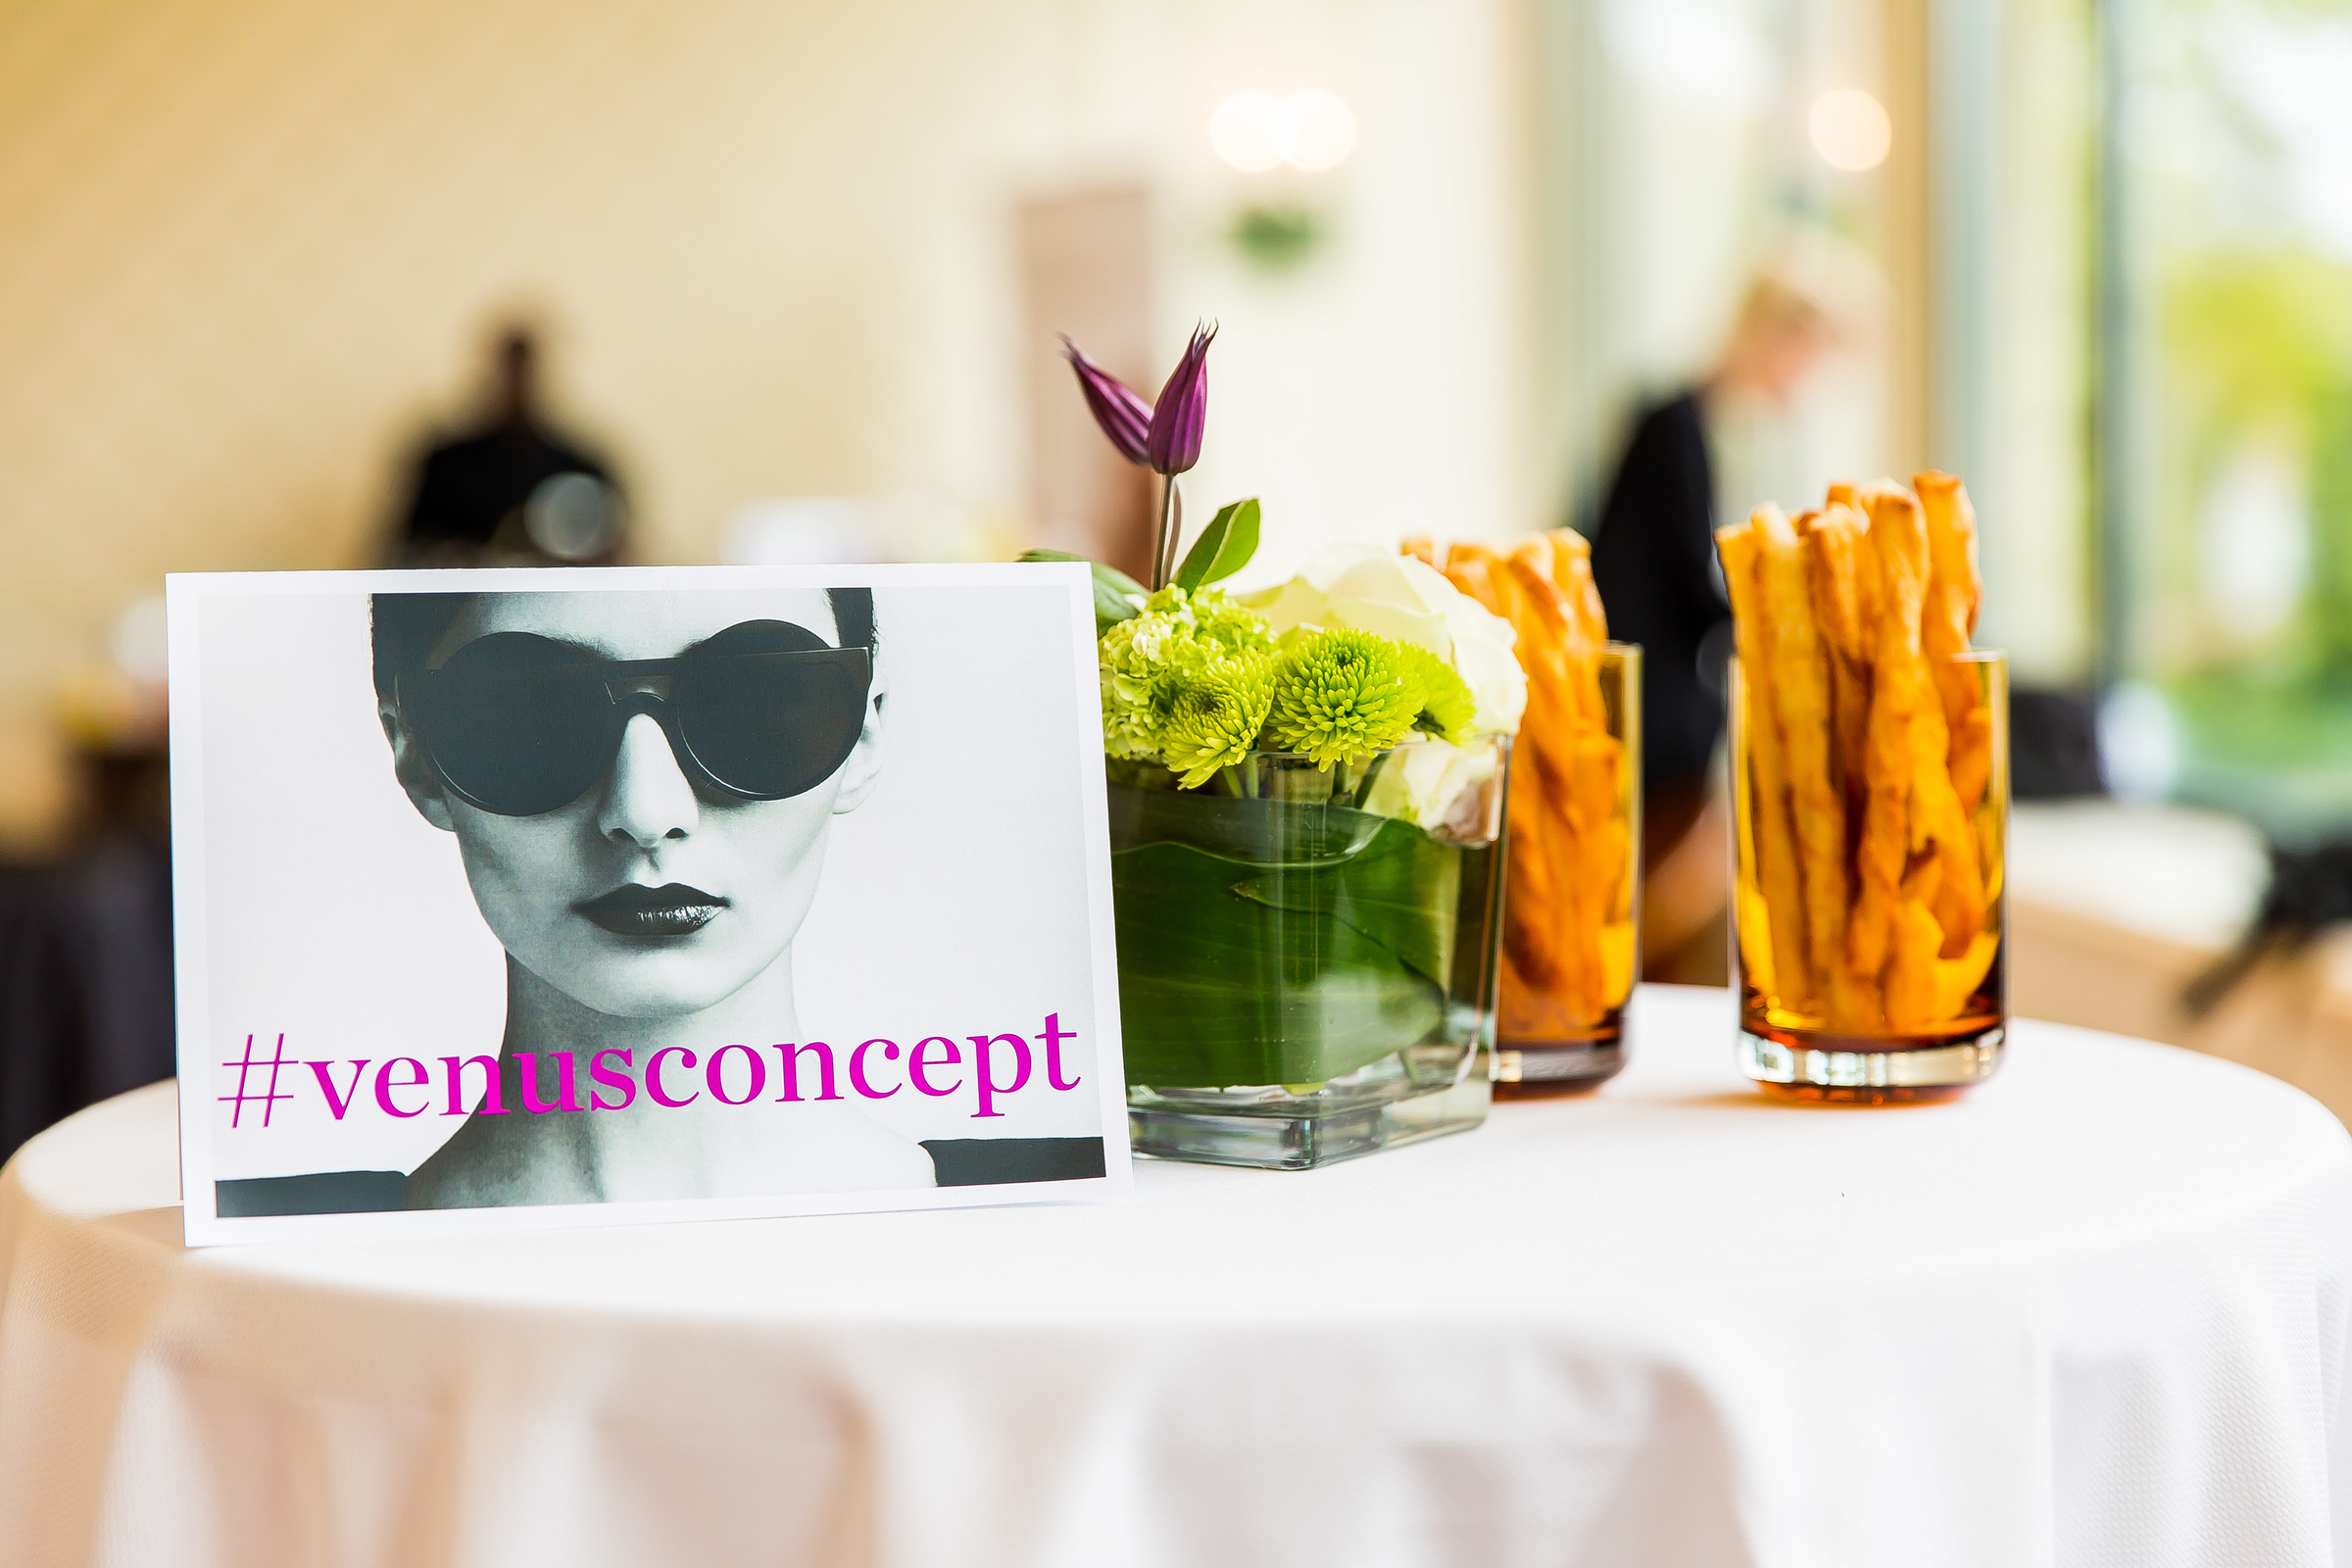 venusconcept-myswitzerland-swiss-events-sgturningpointcom-stephanieguillaume-lifestyle_beauty-9